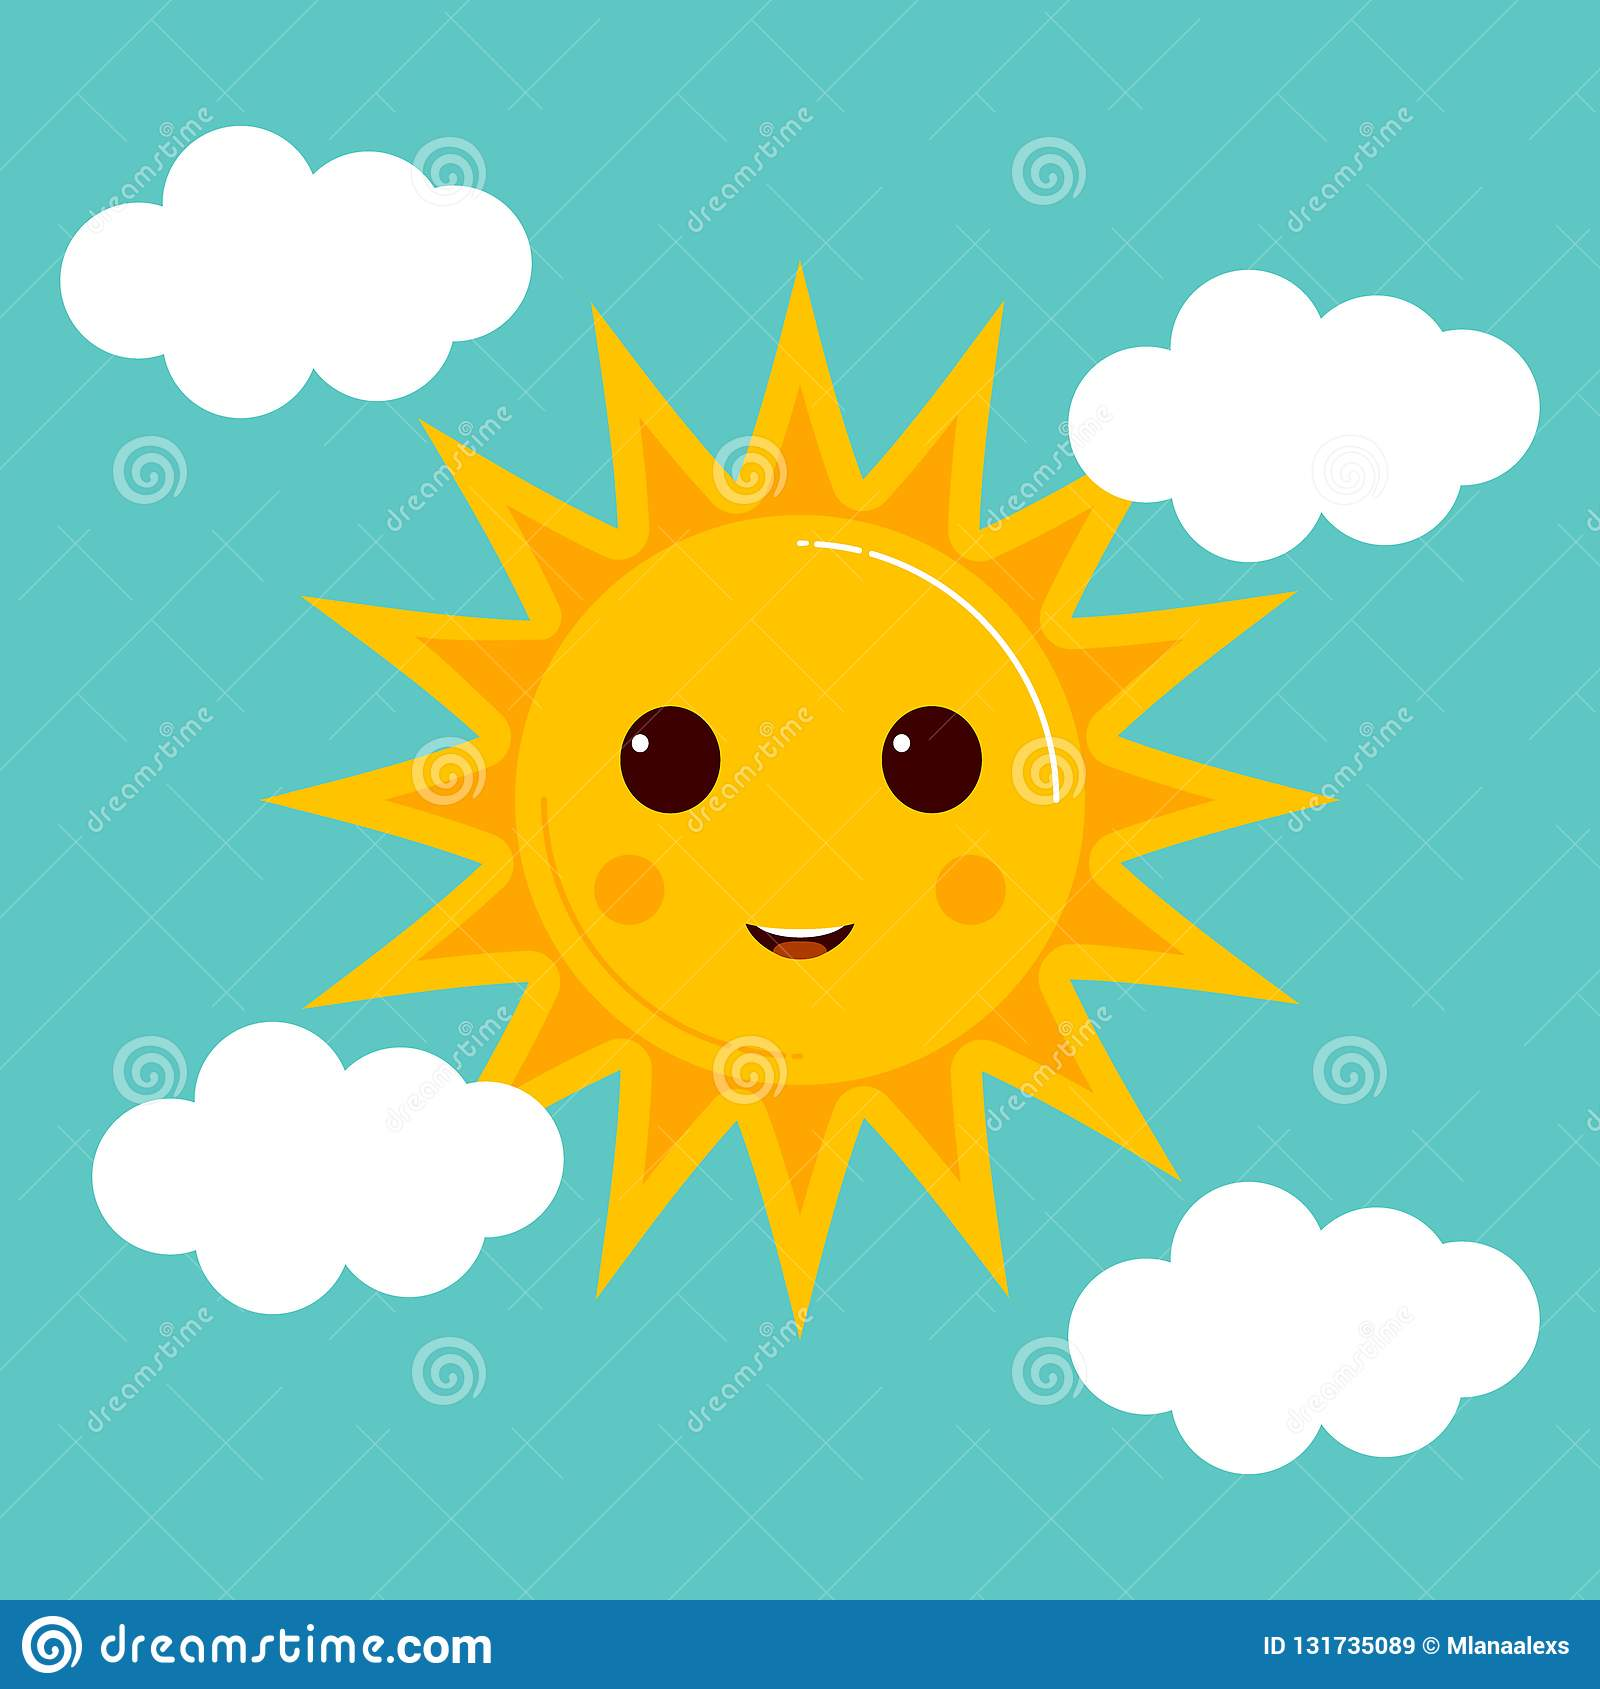 Day Illustrations With Funny Smiling Cartoon Characters Of Sun Stock Vector Illustration Of Cartoon Background 131735089